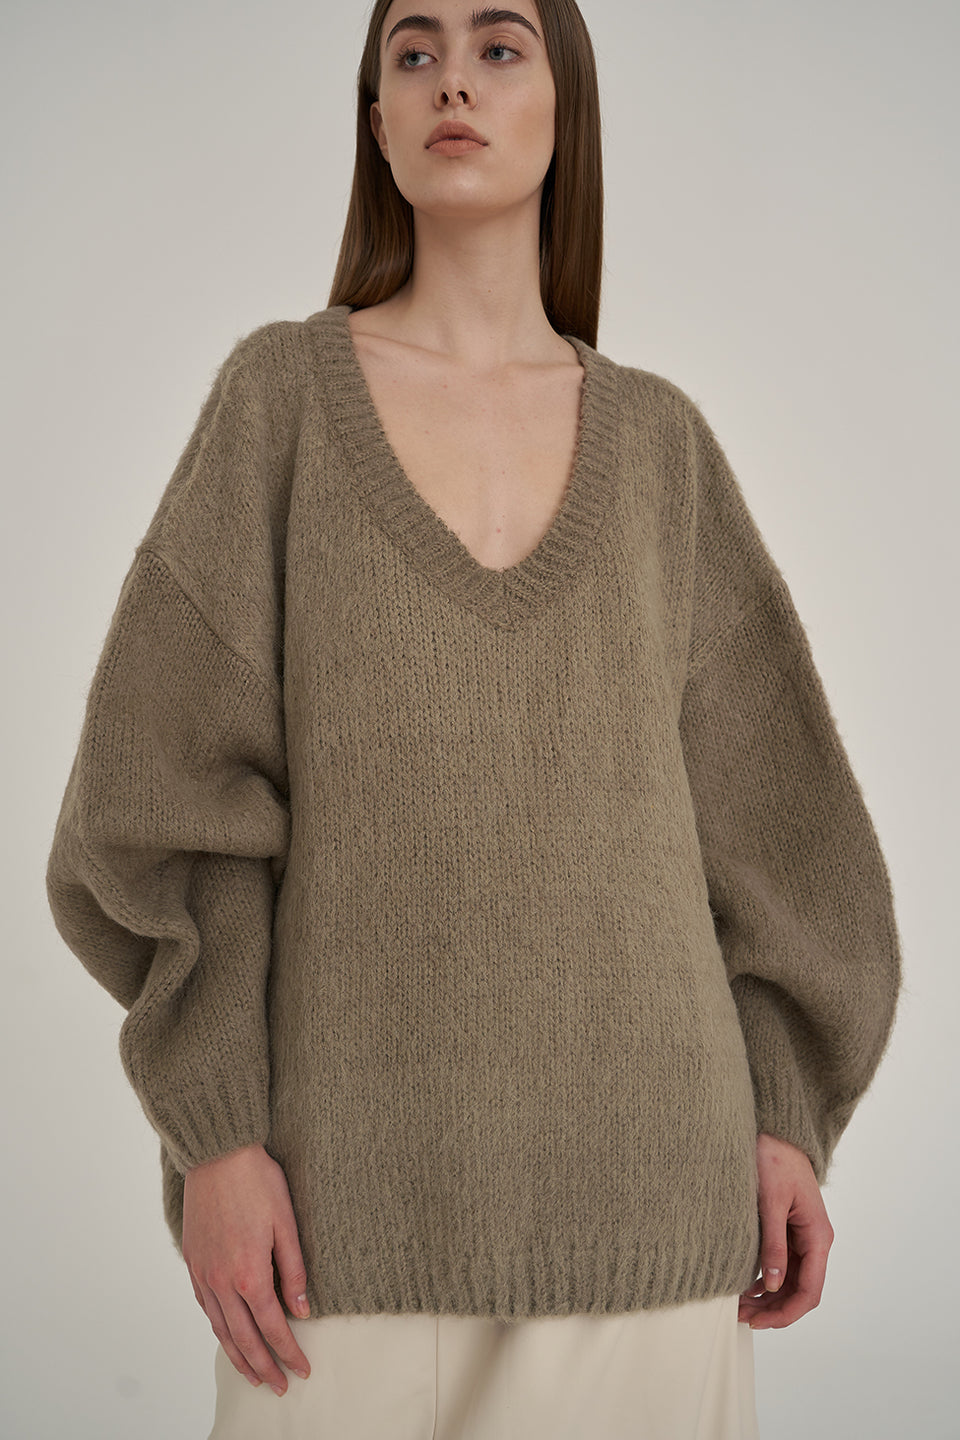 Leroy Sweater